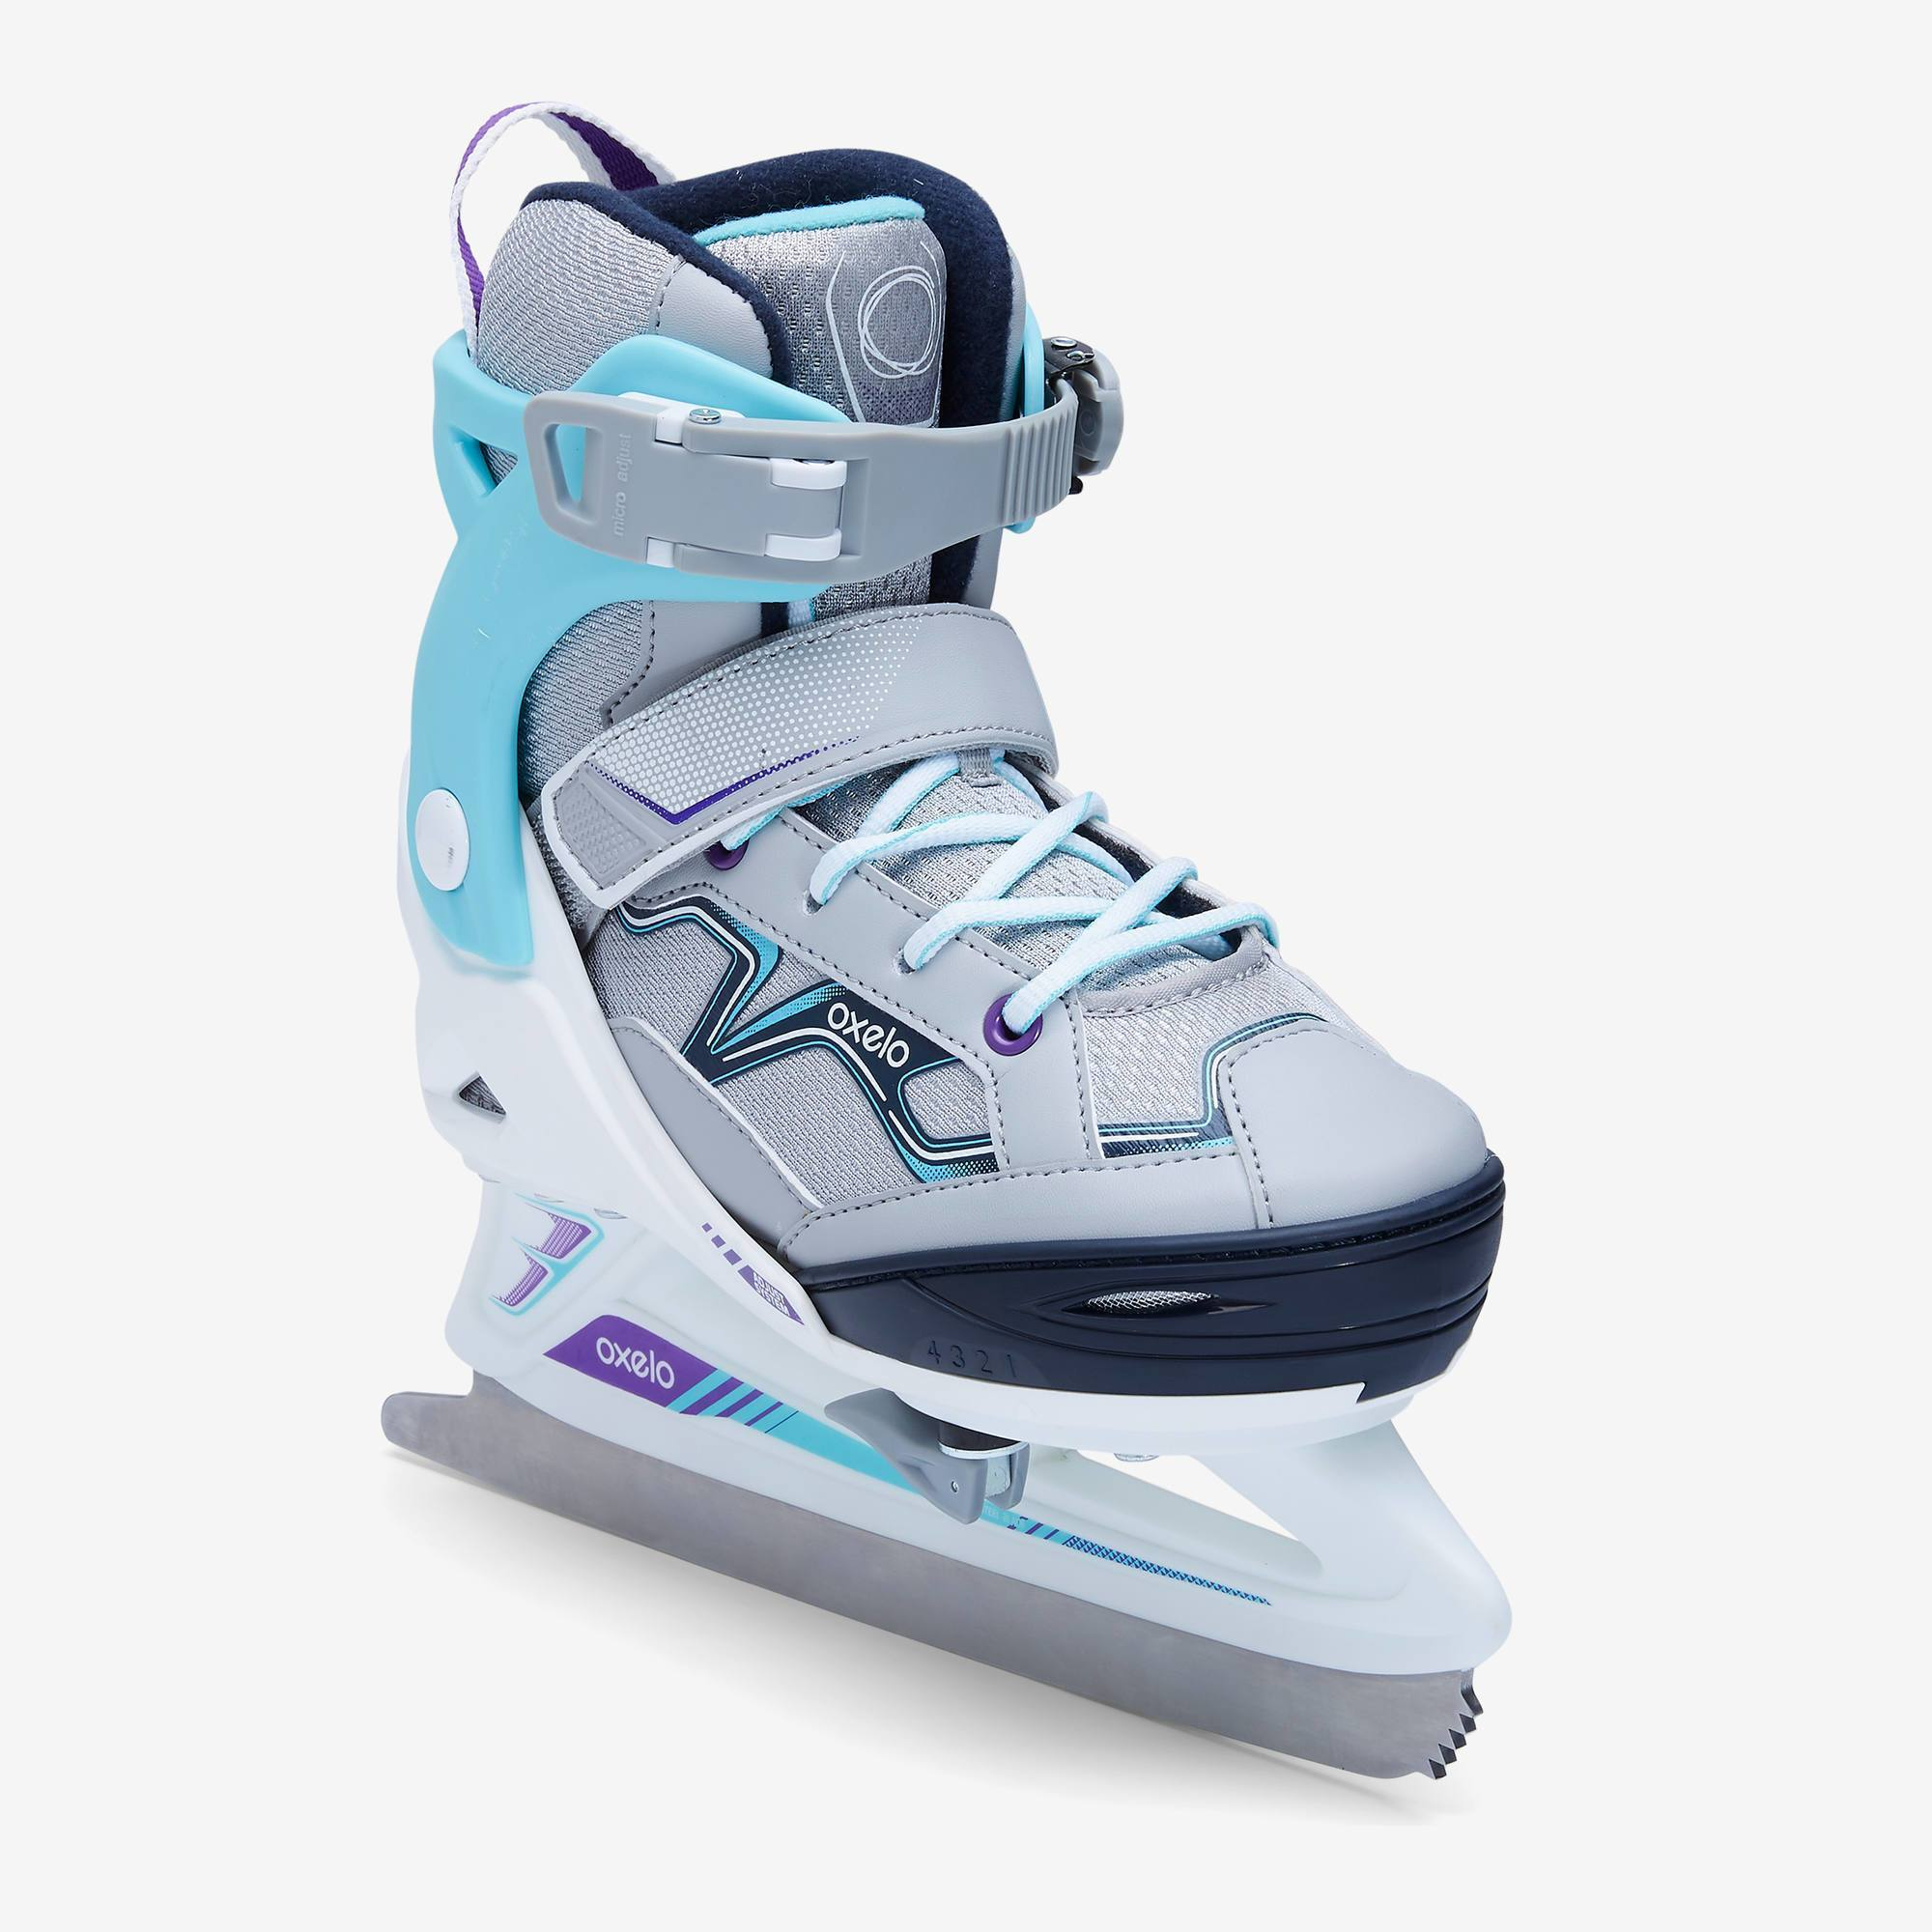 PATIN A GLACE FIT100 GRIS/TURQUOISE